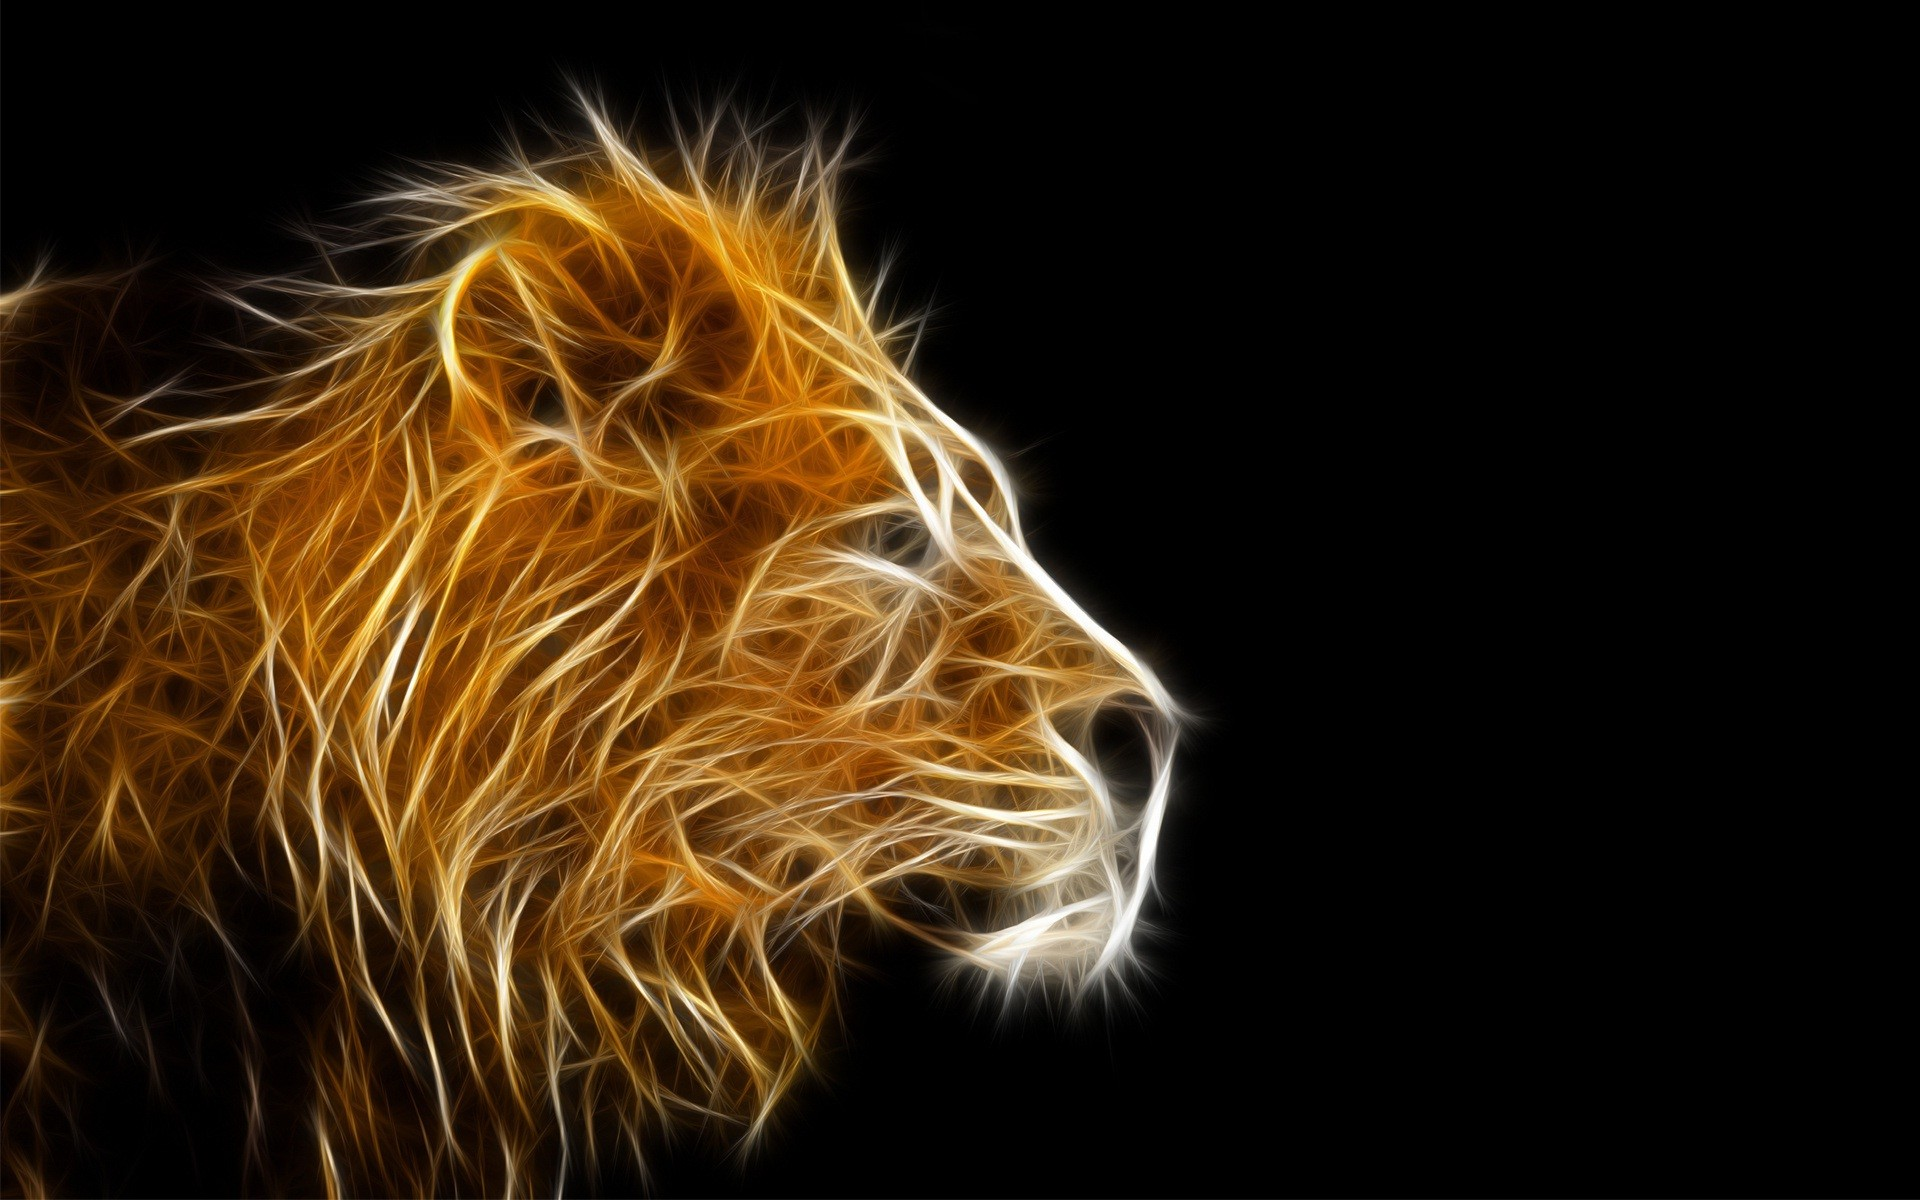 Res: 1920x1200, Lion face on black background animal wallpapers